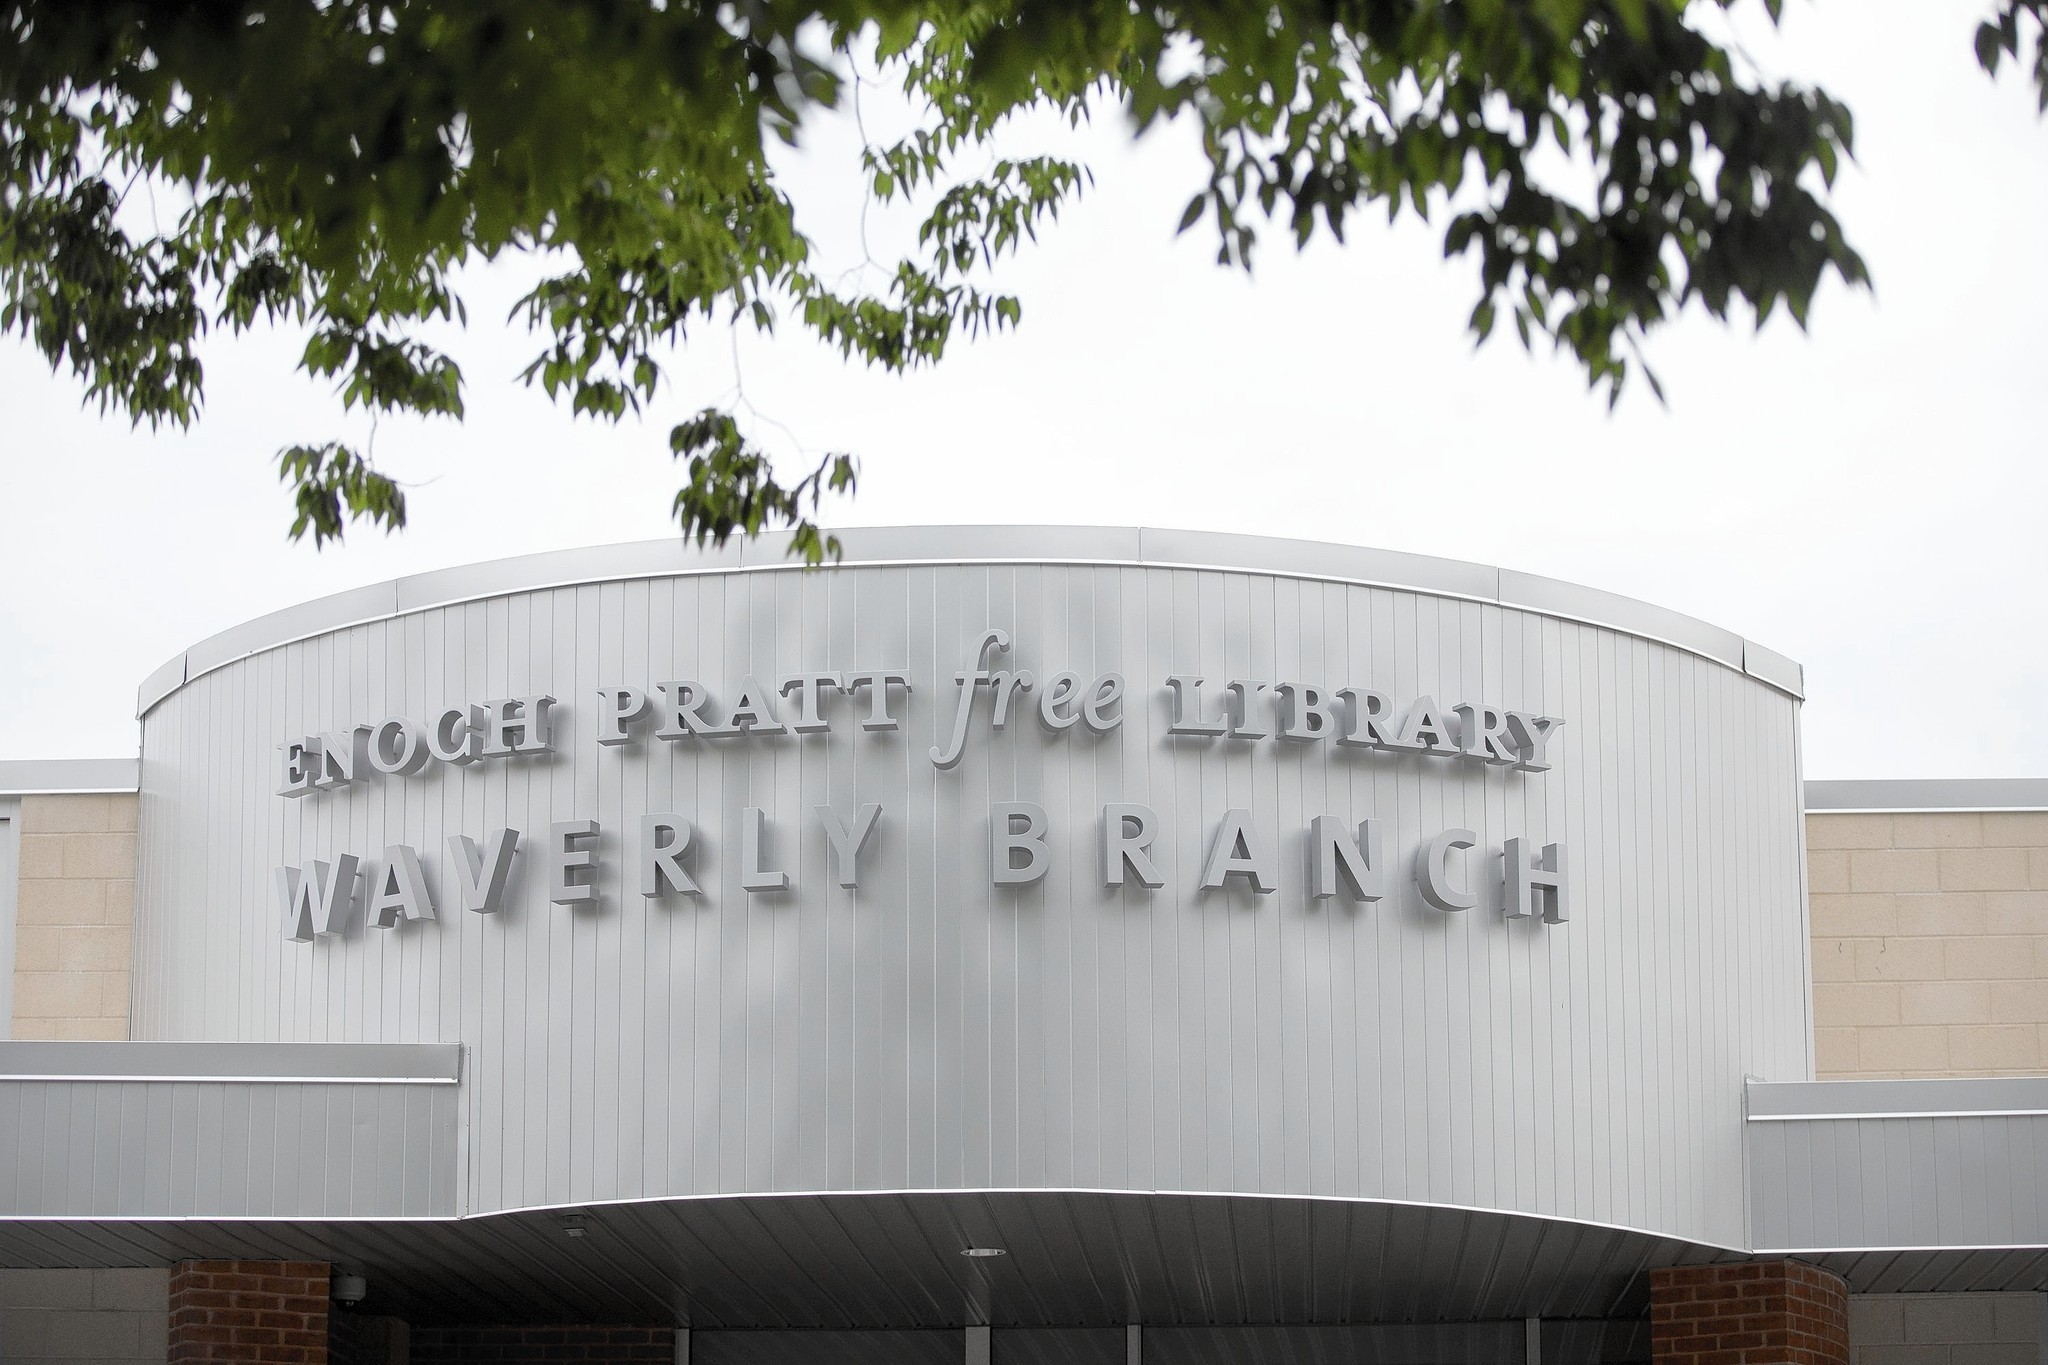 Renovated Waverly library branch to reopen after 'endless delays